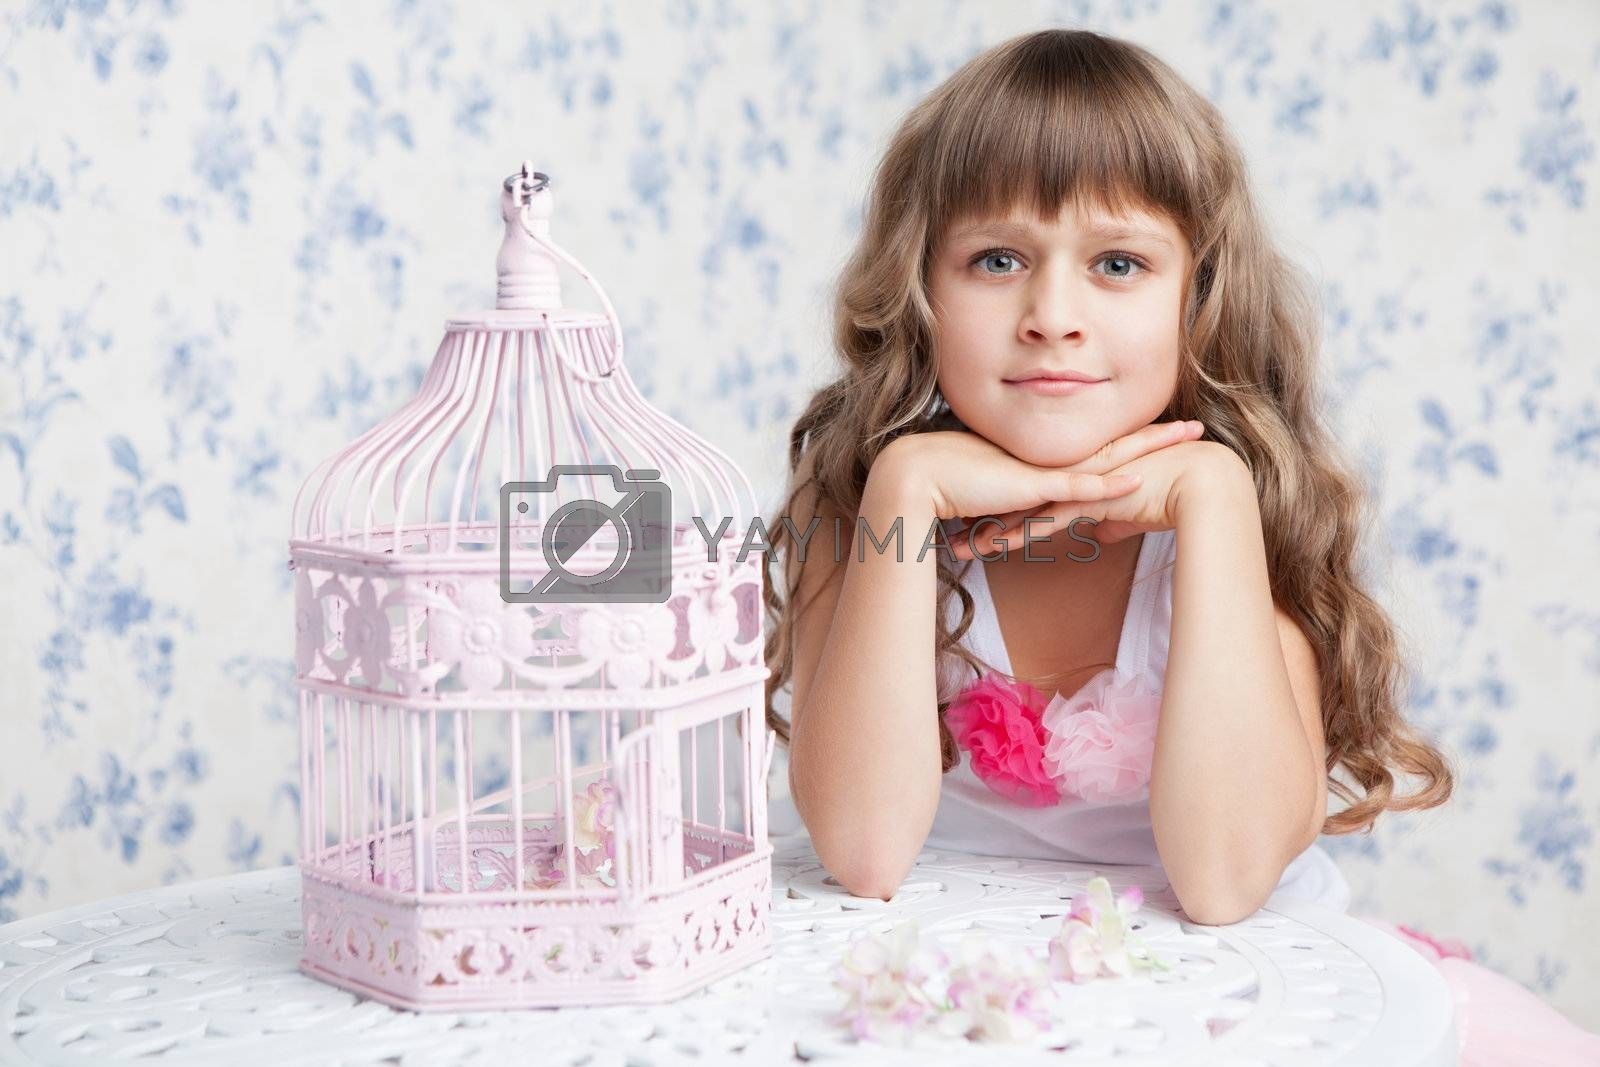 Tender sincere dreamy romantic openhearted blond girl with long wavy hair looking at camera seating near open empty pink birdcage and lacy white table on the light blue flower background